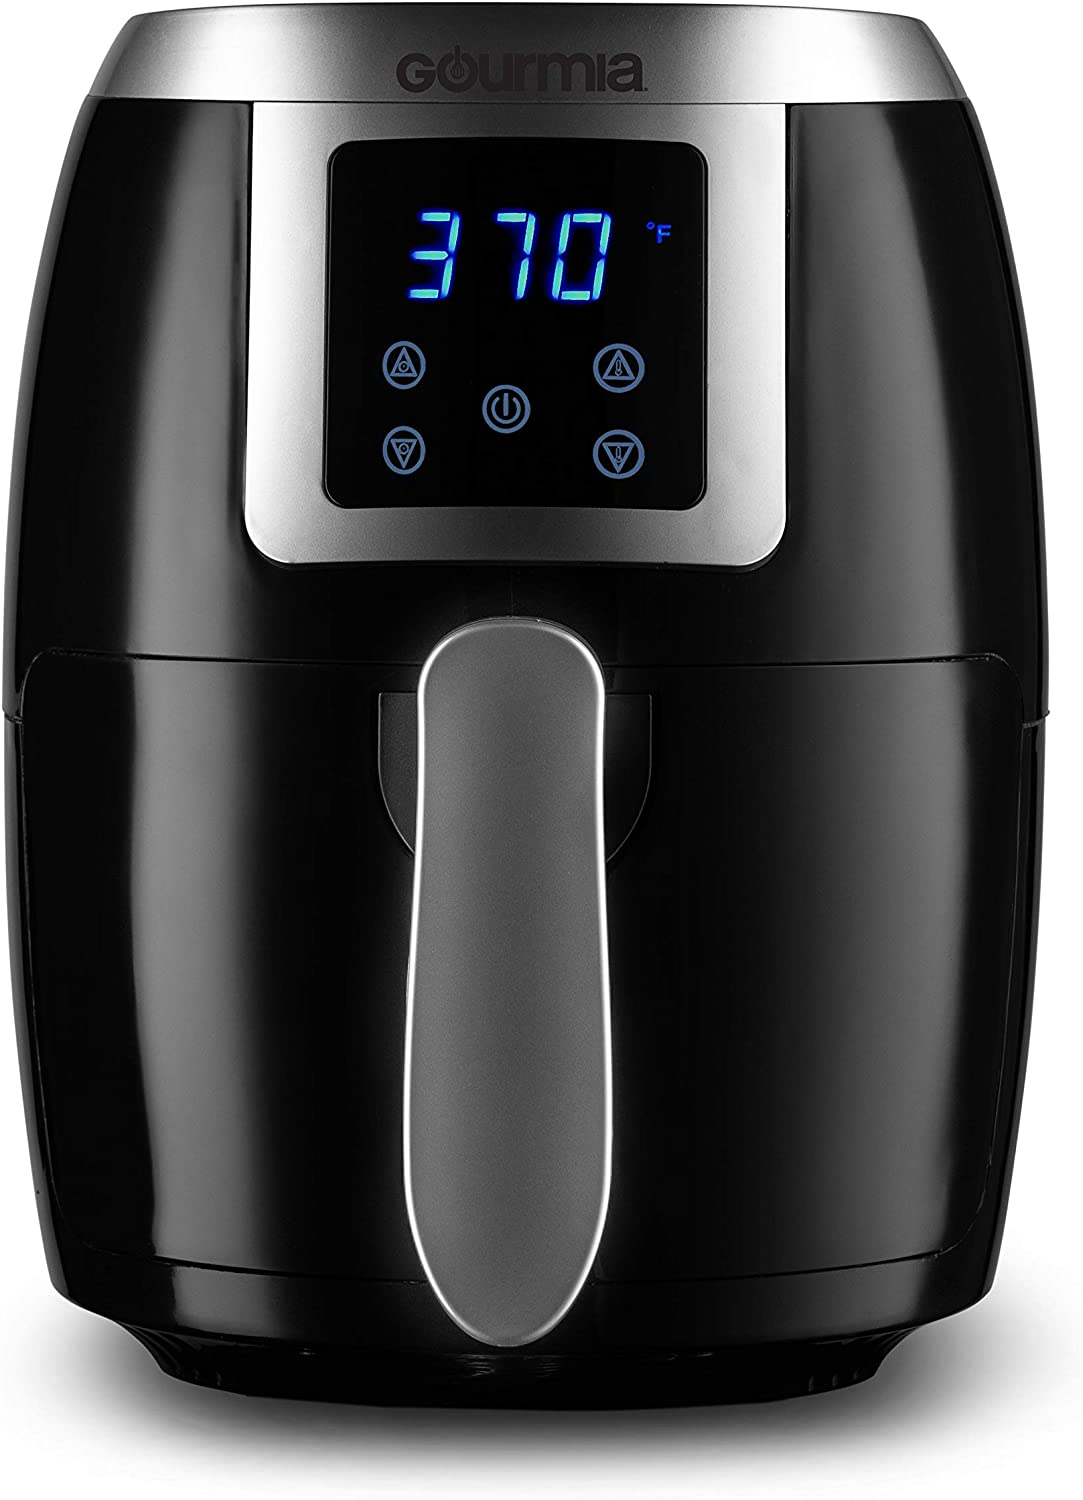 Gourmia GAF228 2.2 Qt Digital Air Fryer – Oil-Free Healthy Cooking – Digital Controls – Removable, Dishwasher-Safe Pan and Tray – Free Recipe Book Included